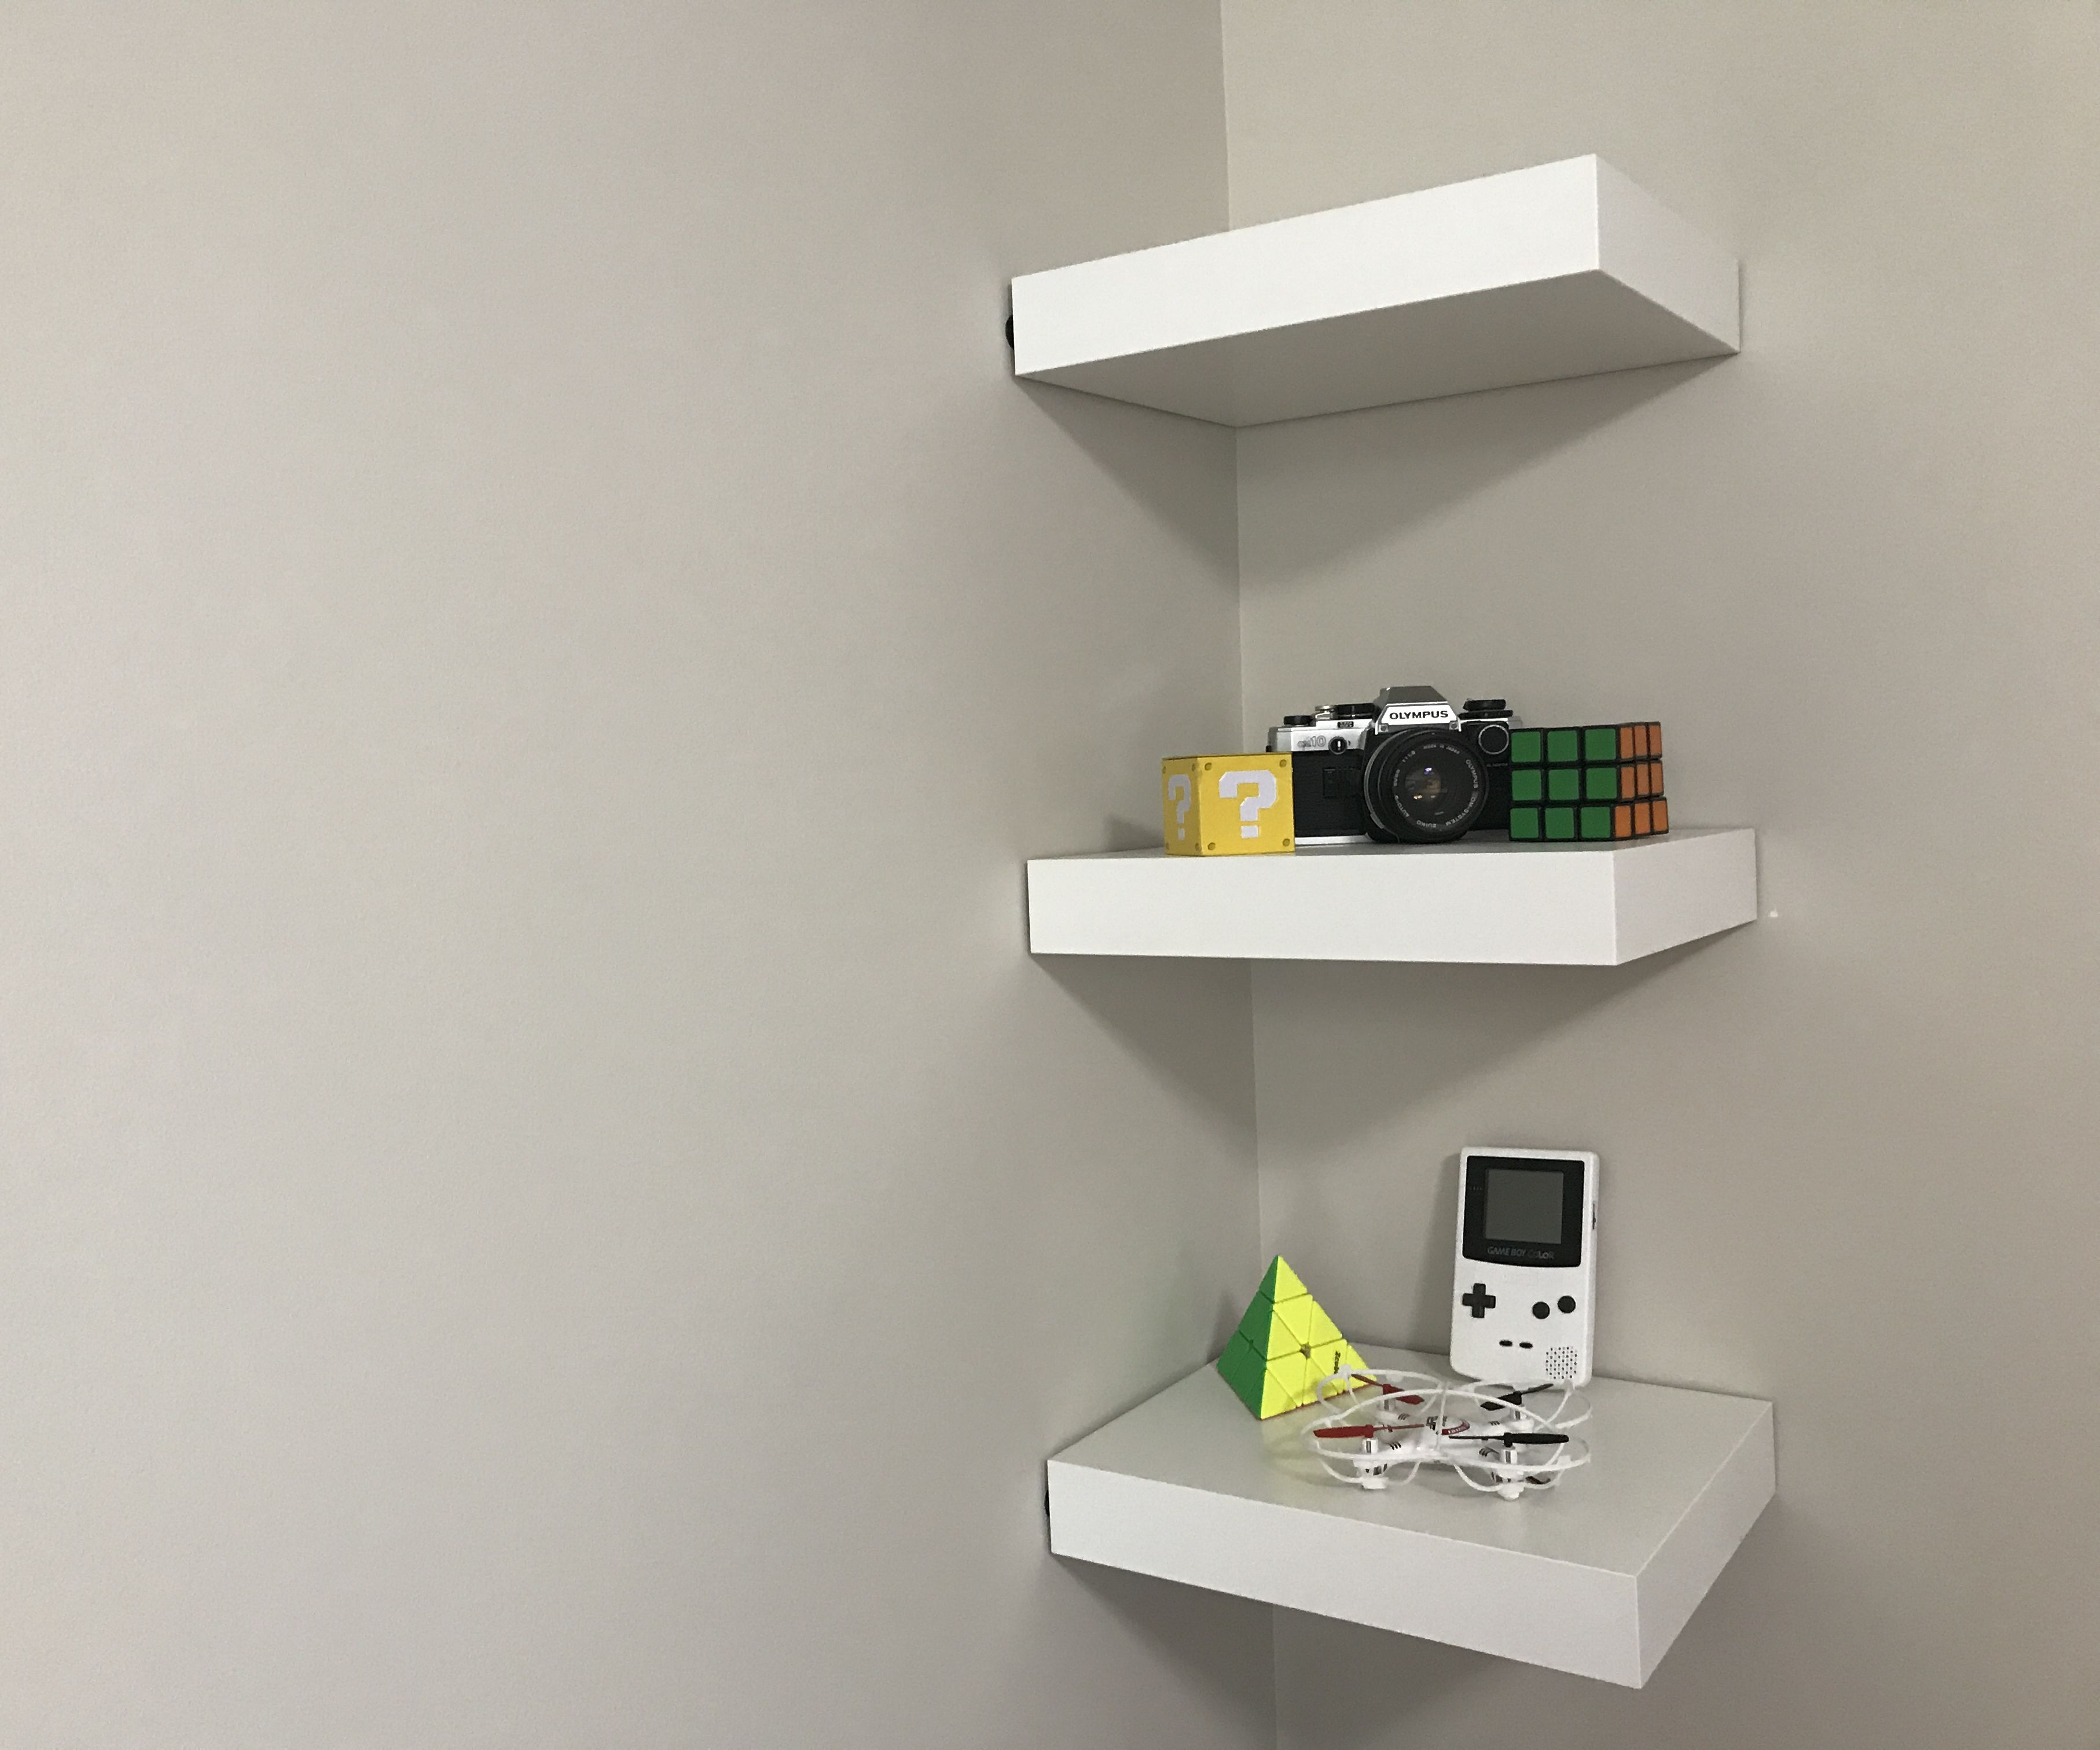 Ikea Lack Upgrade Ikea Lack Shelf Without Drilling Or Nails 6 Steps With Pictures